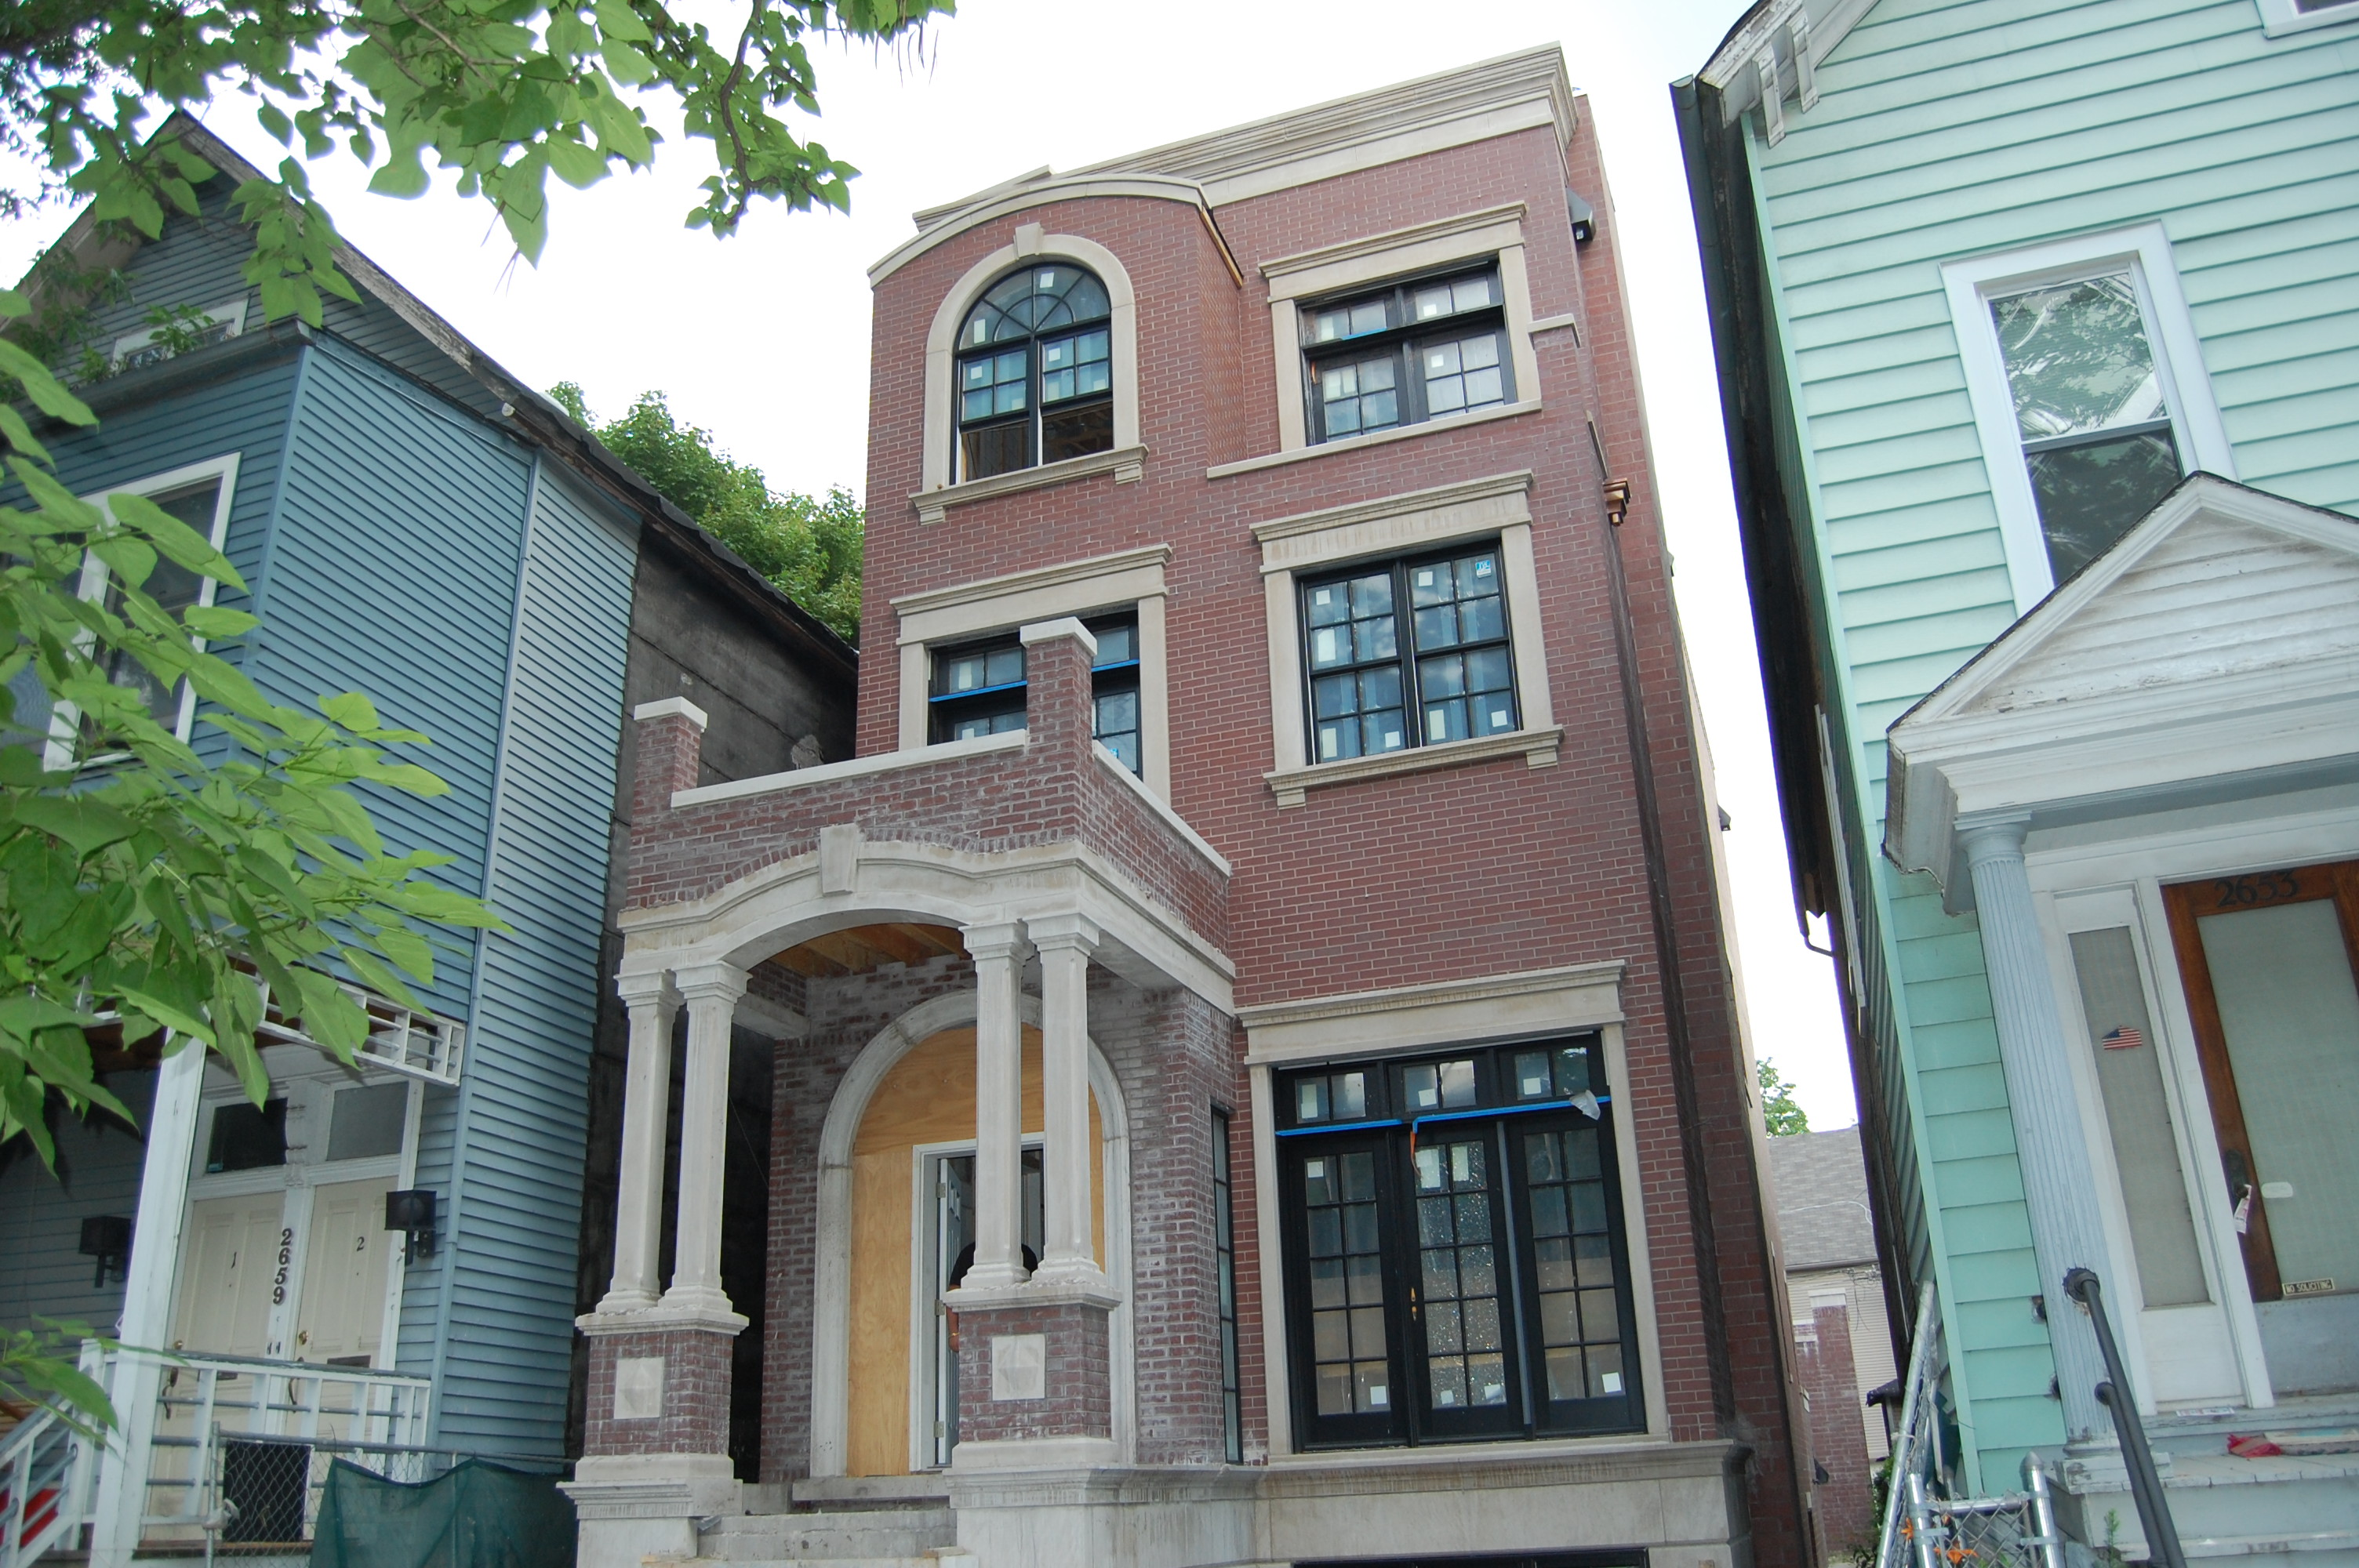 Construction update: mini-manse on Mildred in Lincoln Park